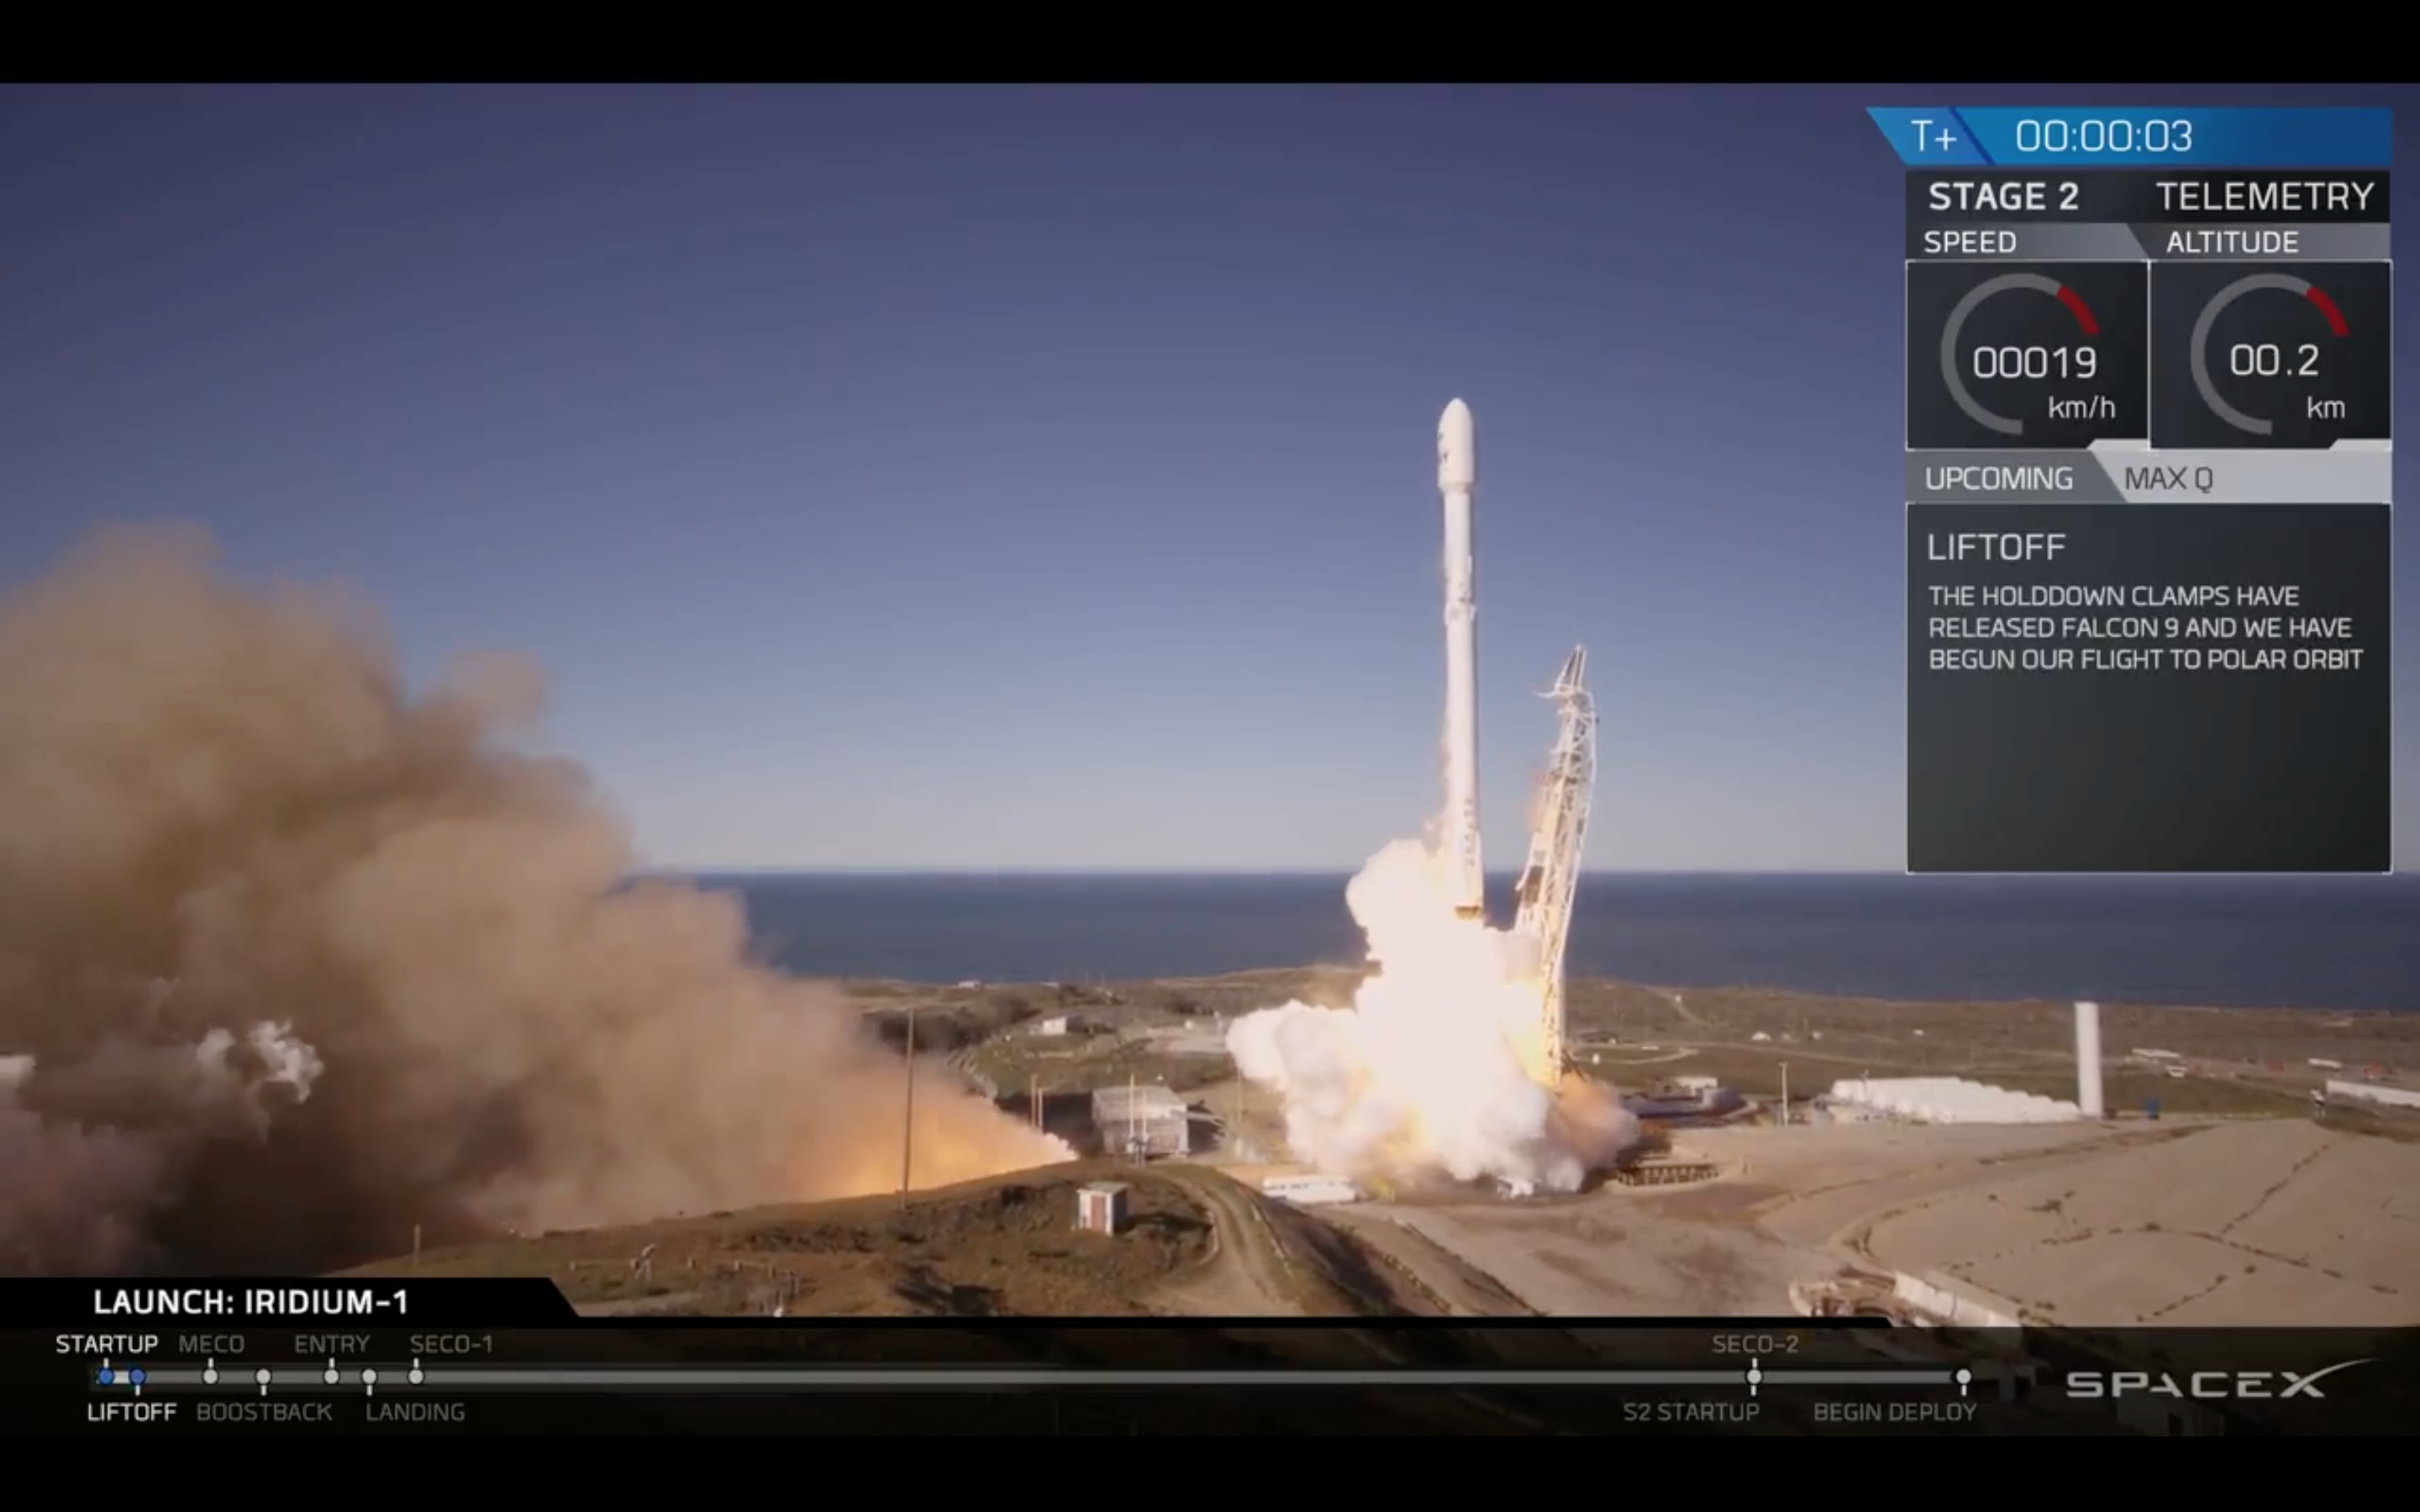 https://fsmedia.imgix.net/be/a2/06/e2/f5ae/418c/aa49/b1e5bf042ee7/falcon-9-launches-from-vanderberg-air-force-base-in-california-on-january-14.png